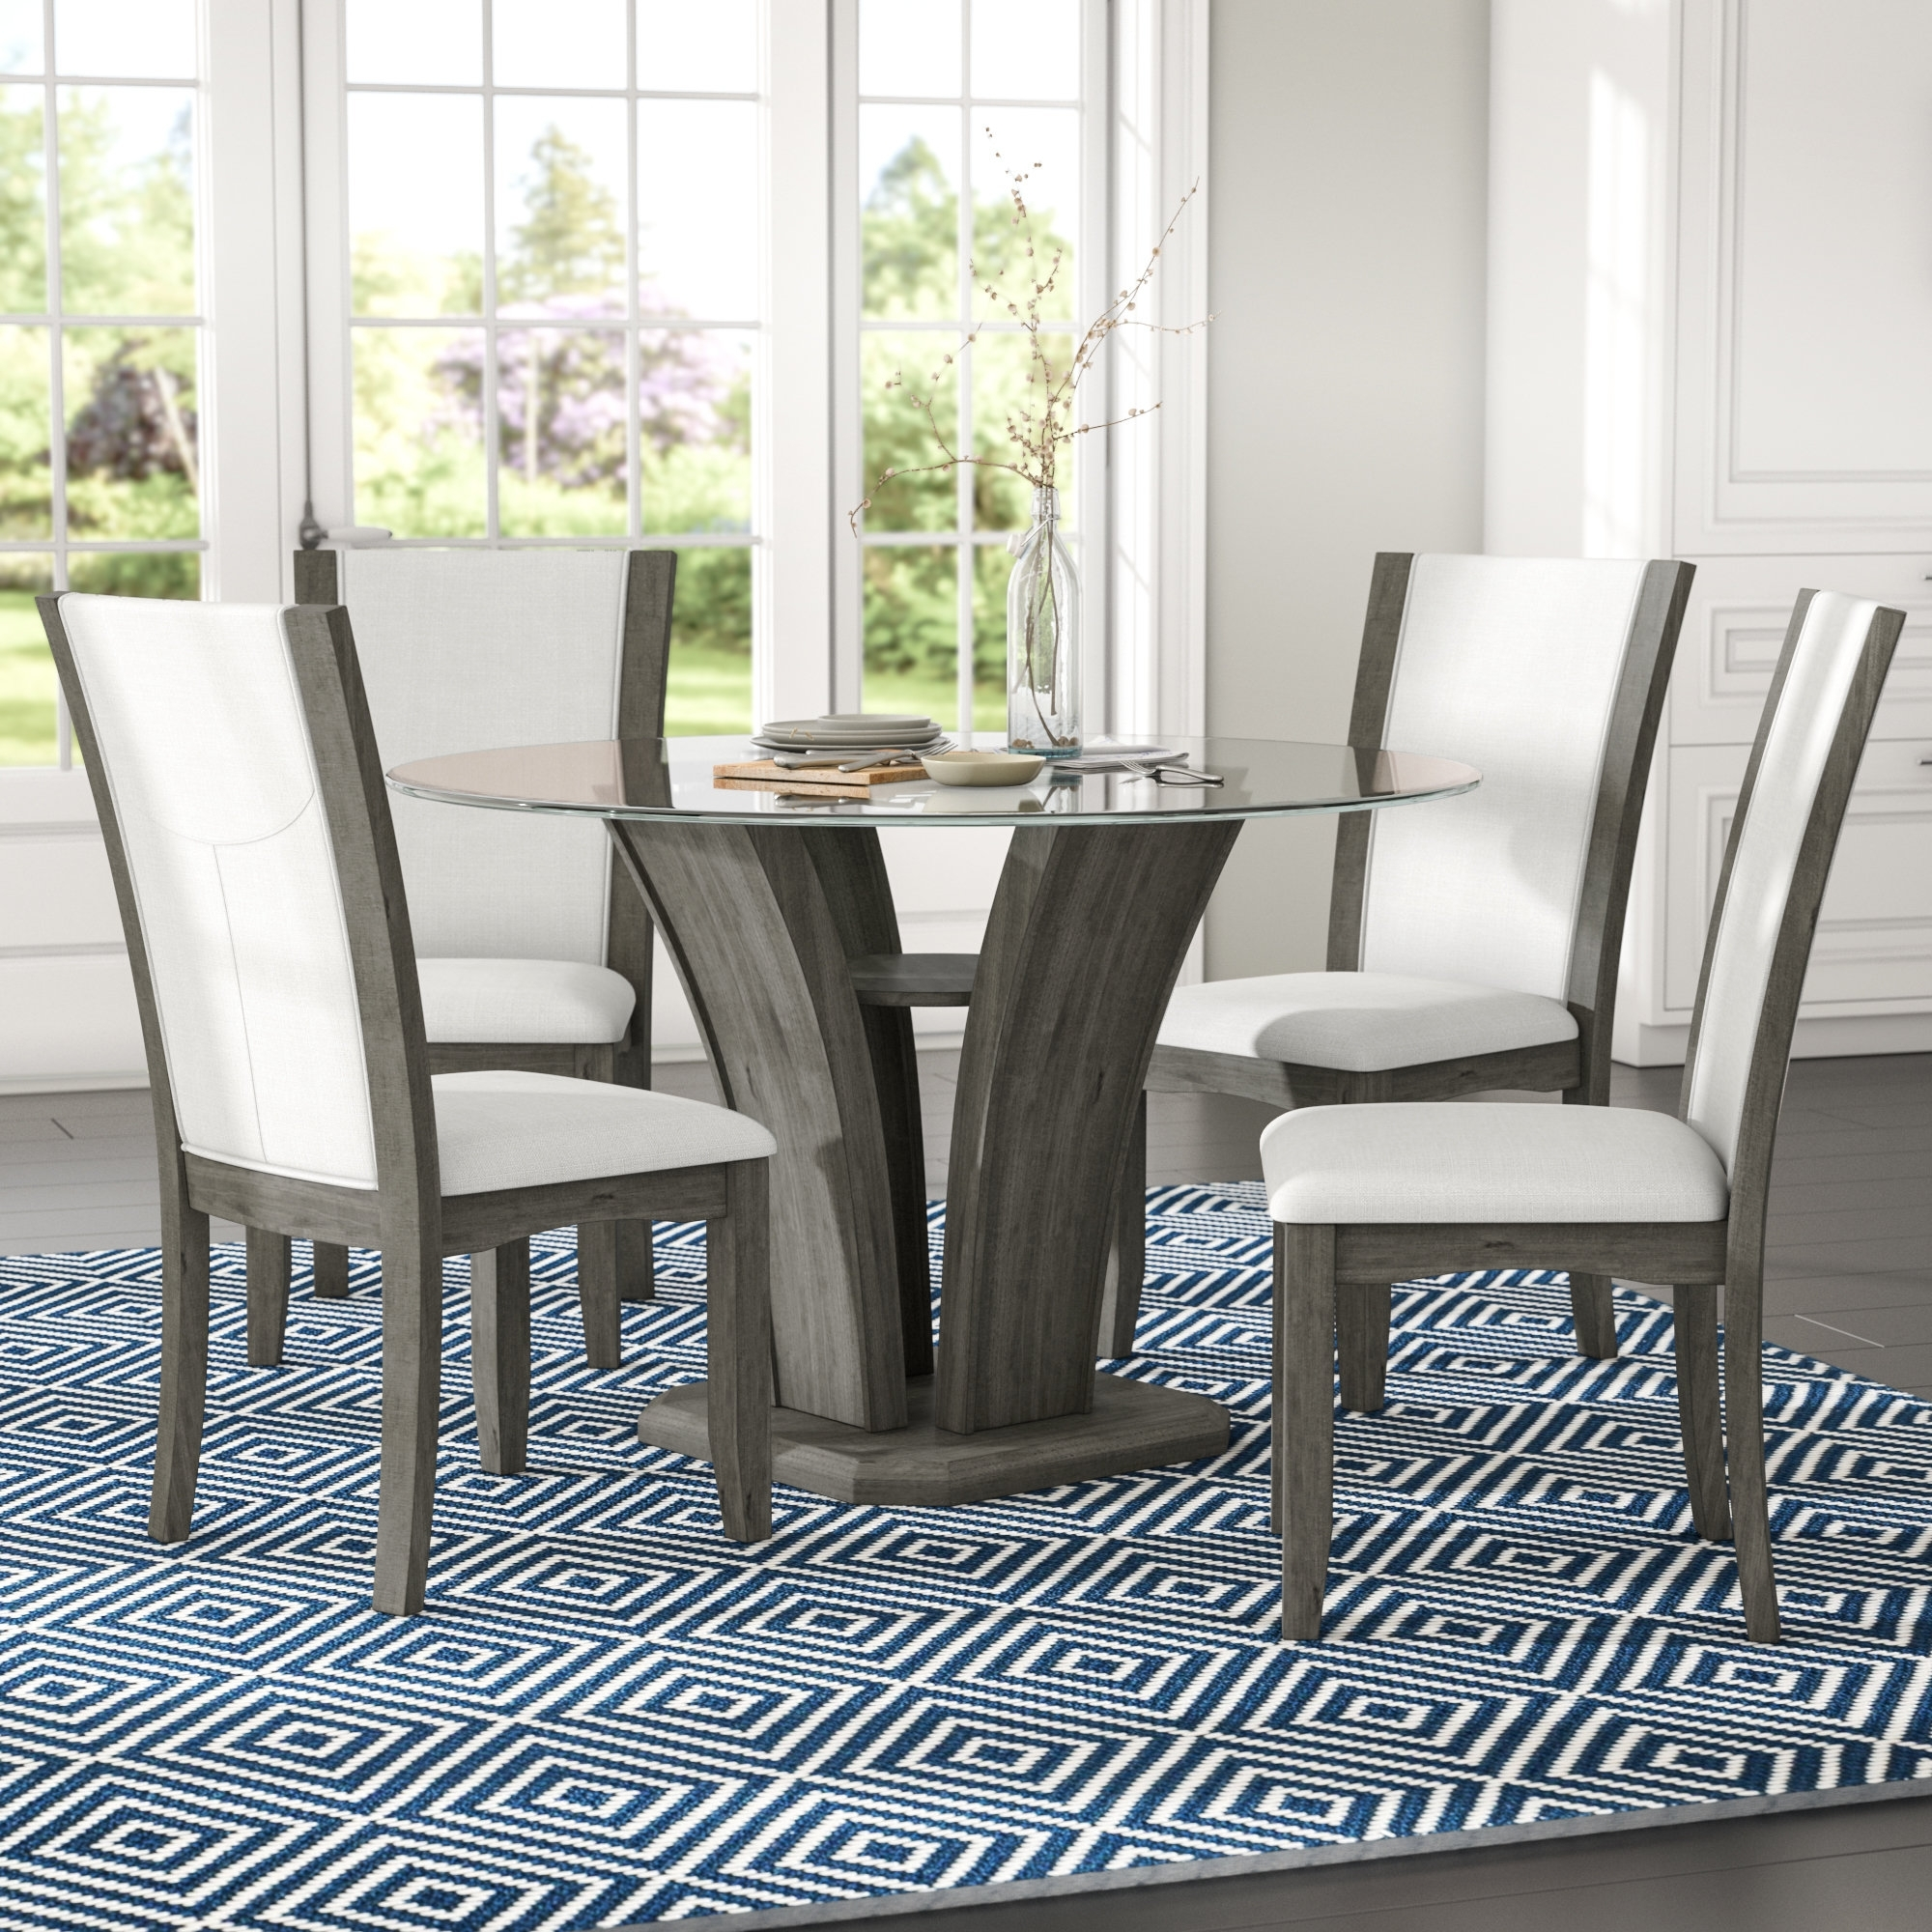 Brayden Studio Kangas 5 Piece Glass Top Dining Set & Reviews | Wayfair Throughout Most Recent Laurent 5 Piece Round Dining Sets With Wood Chairs (Image 6 of 20)